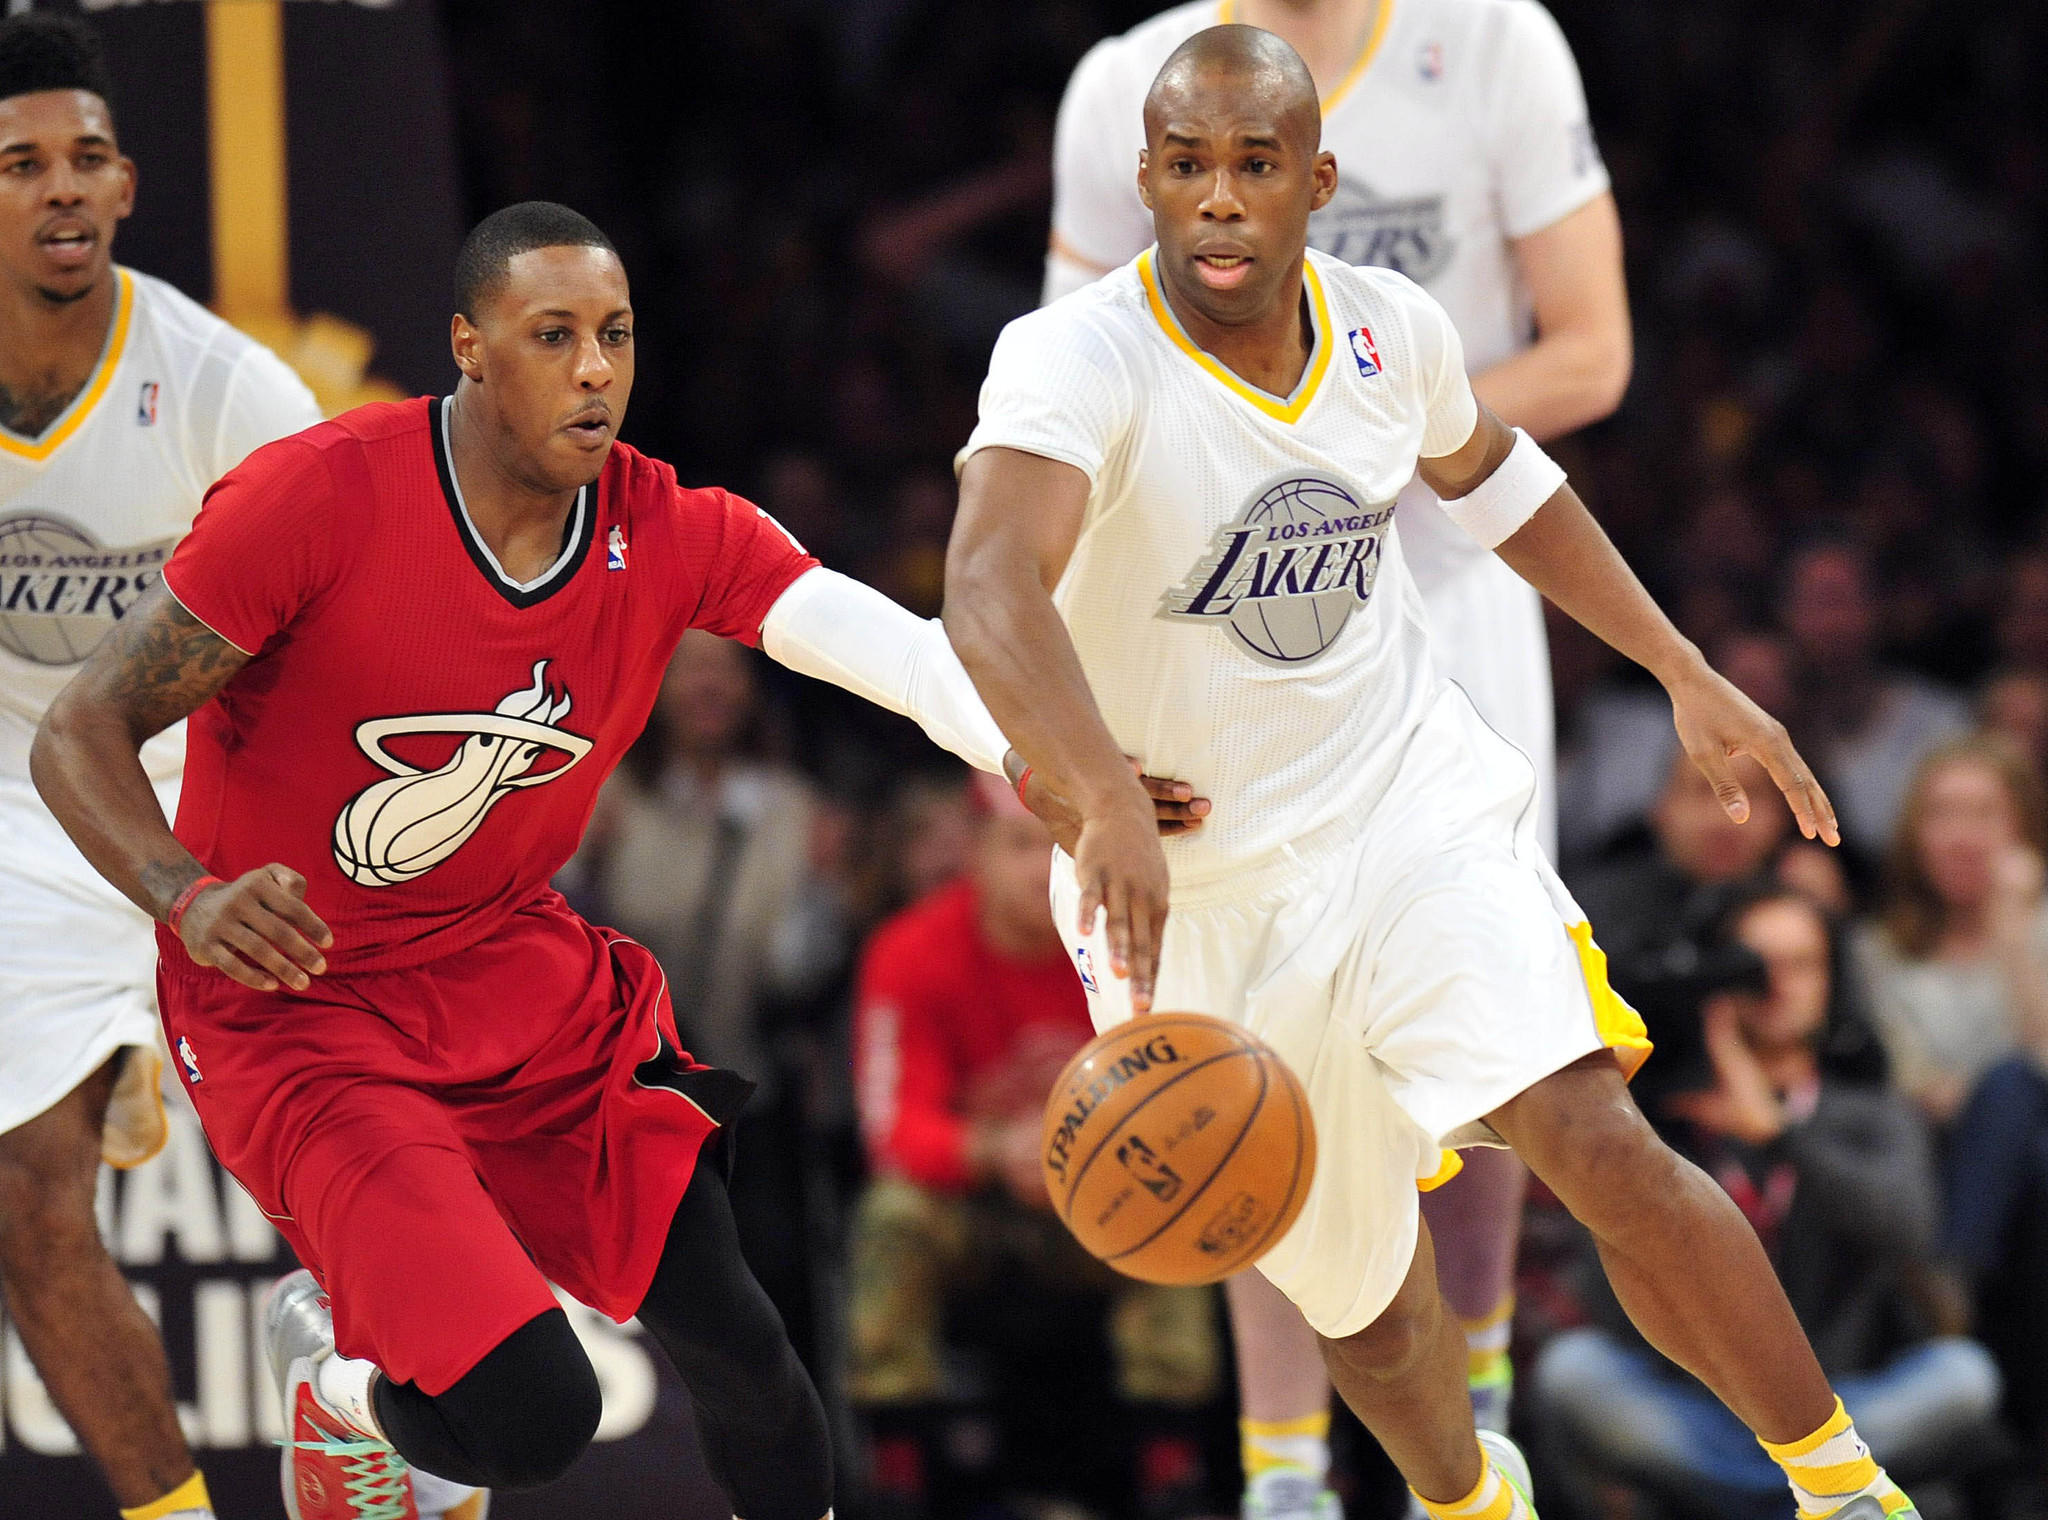 December 25, 2013; Los Angeles, CA, USA; Los Angeles Lakers shooting guard Jodie Meeks (20) moves the ball ahead of Miami Heat point guard Mario Chalmers (15) during the second half at Staples Center. Mandatory Credit: Gary A. Vasquez-USA TODAY Sports ORG XMIT: USATSI-140316